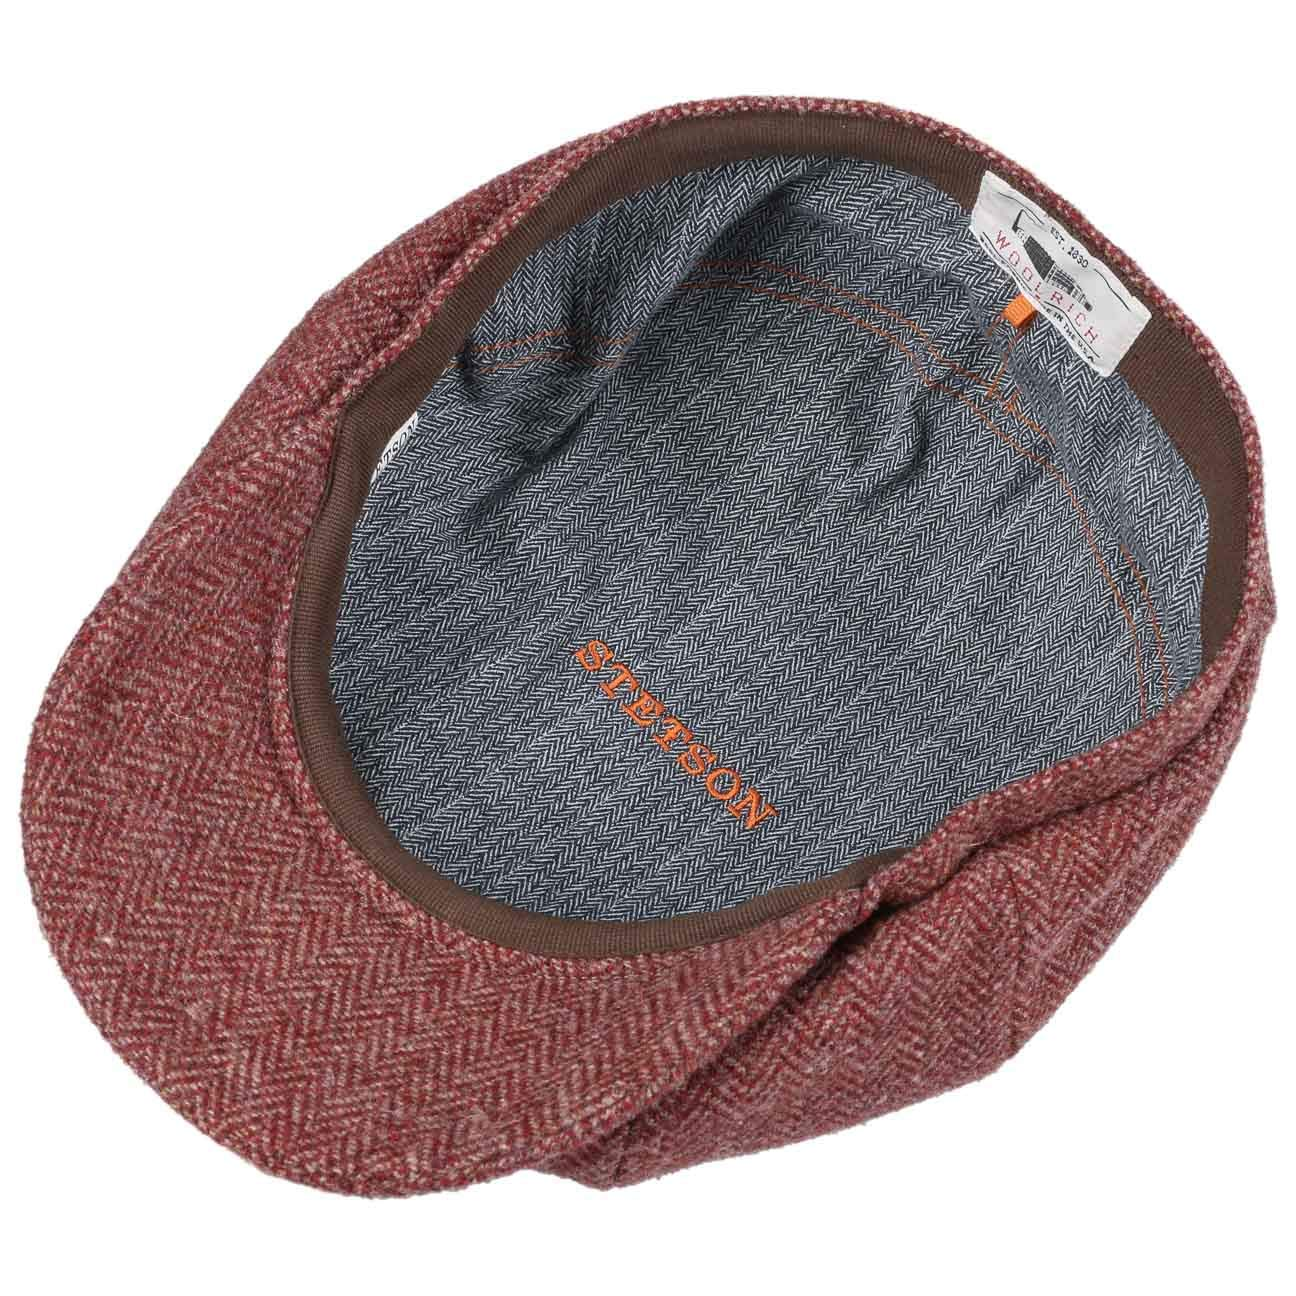 cf0d4675c Stetson Hatteras Woolrich Flat Cap Men | Made in The EU caps Ivy hat  Newsboy with Peak, Lining, Lining Autumn-Winter